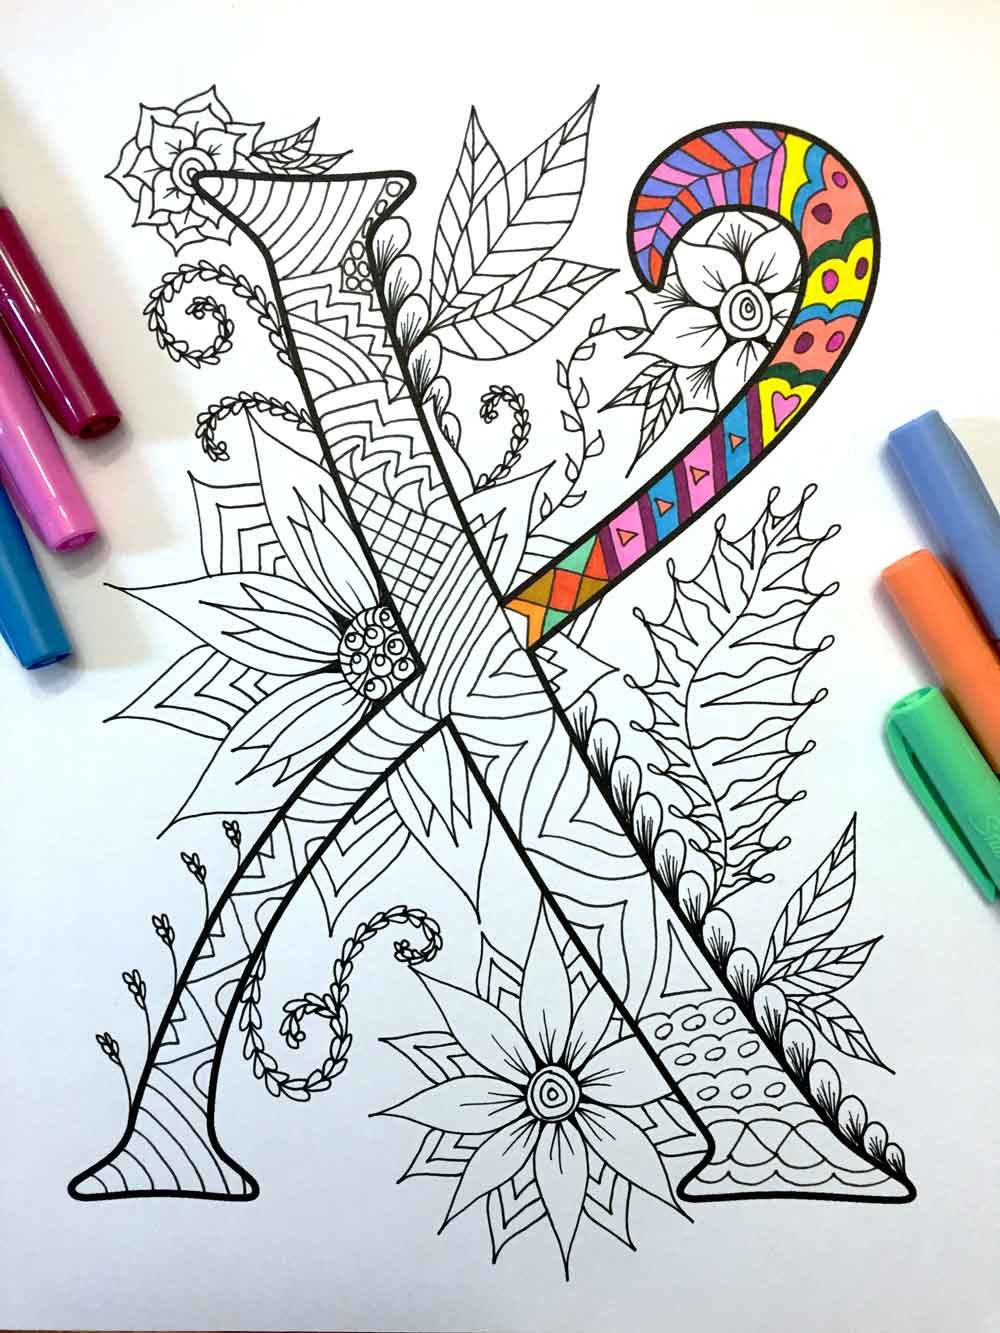 Scribbles Alphabet And Numbers Coloring Book In 2020 Zentangle Patterns Coloring Pages Lettering